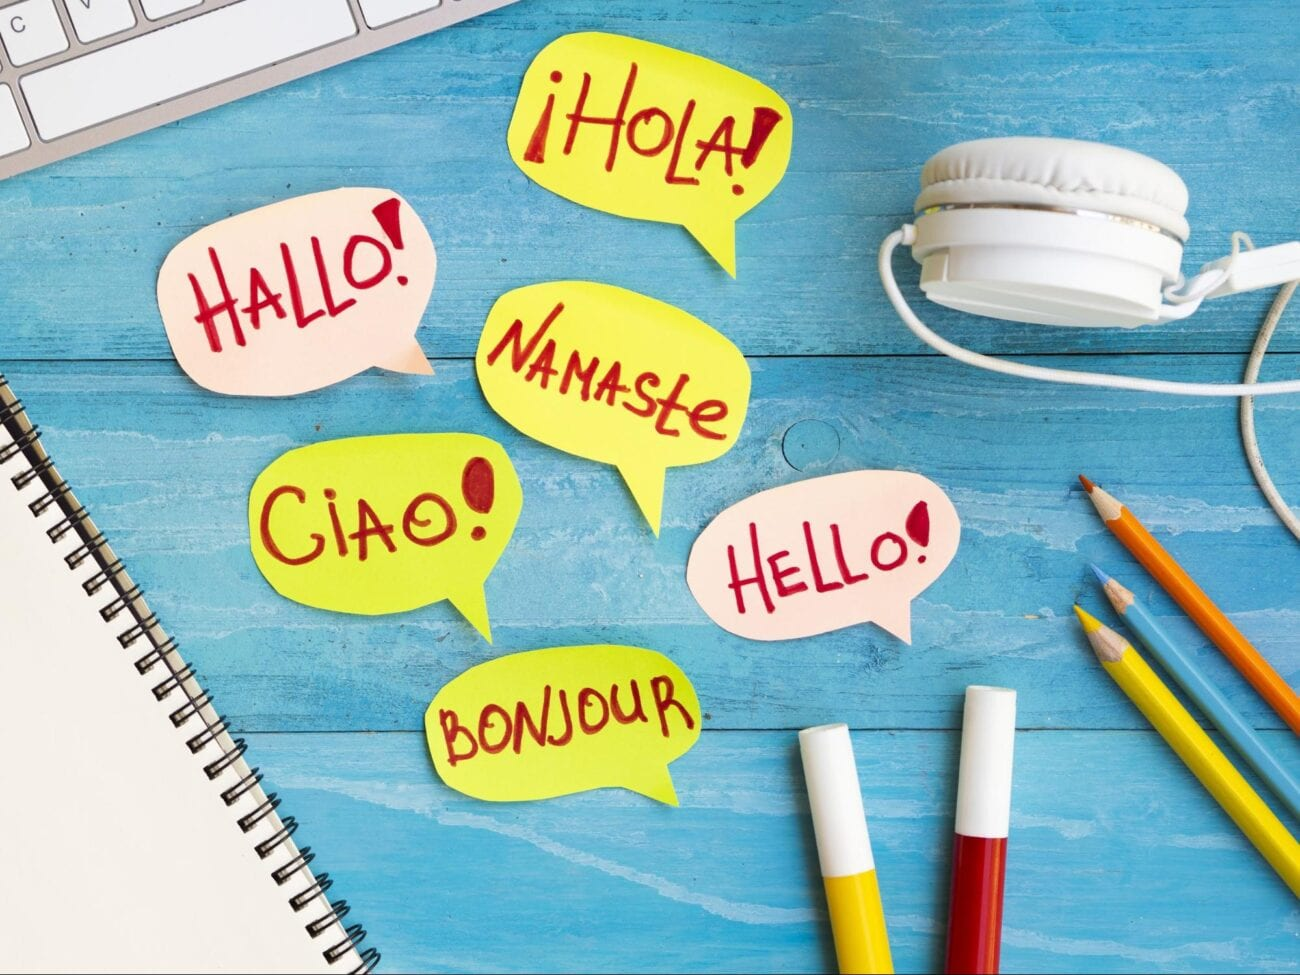 Learning a new language can be difficult. Here are some easy steps to follow to help you master the language of your choice.